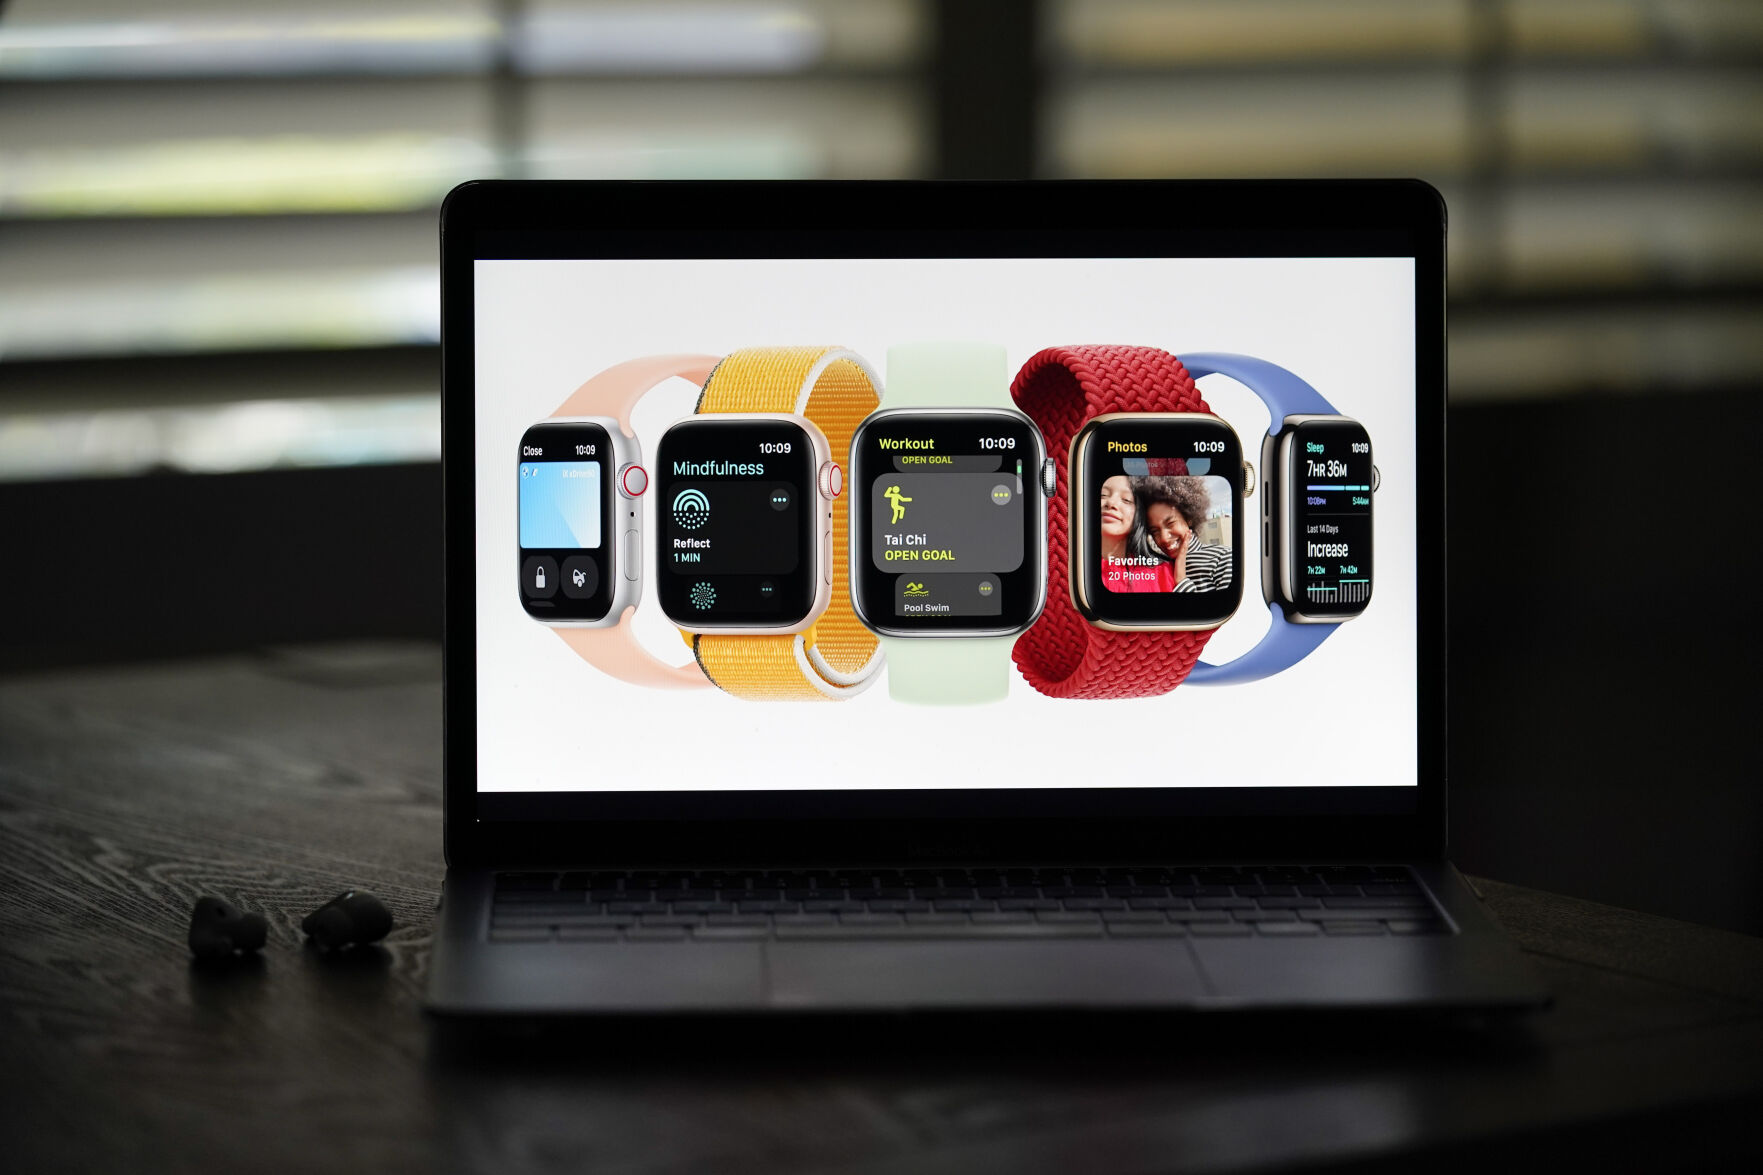 <p>Seen on the screen of a device in La Habra, Calif., new Apple Watch Series 7 models are introduced during a virtual event held to announce new Apple products Tuesday, Sept. 14, 2021. (AP Photo/Jae C. Hong)</p>